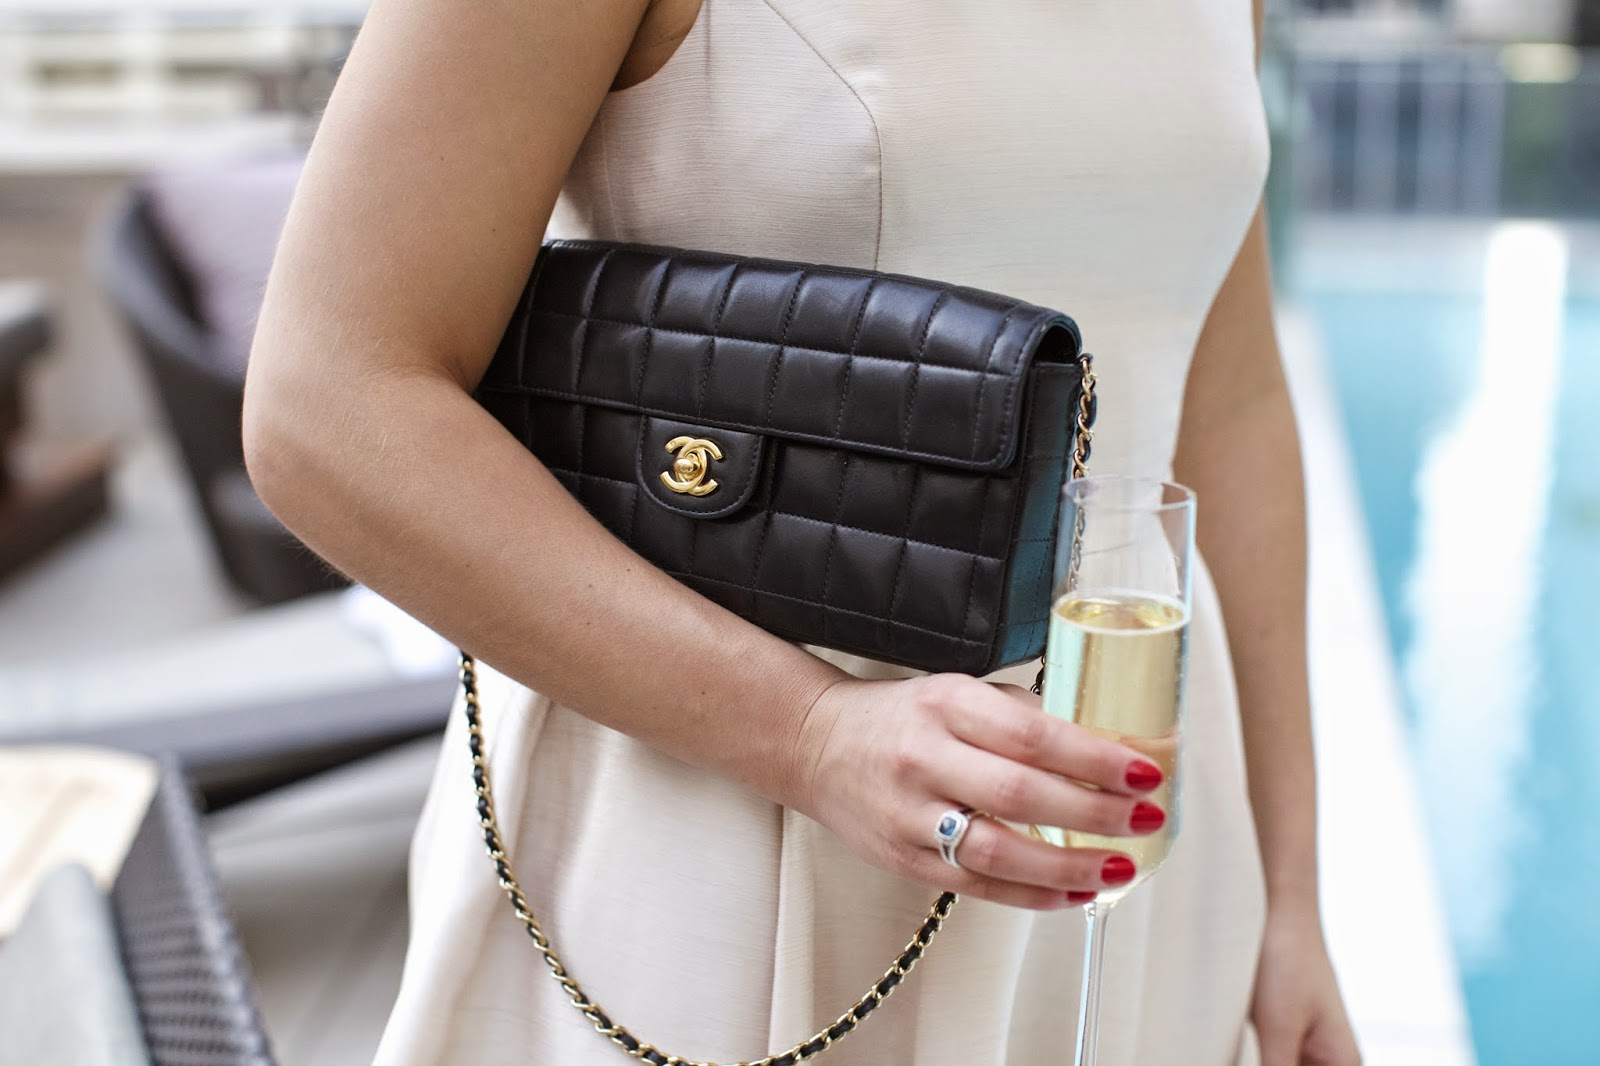 chanel chocolate bar bag in black